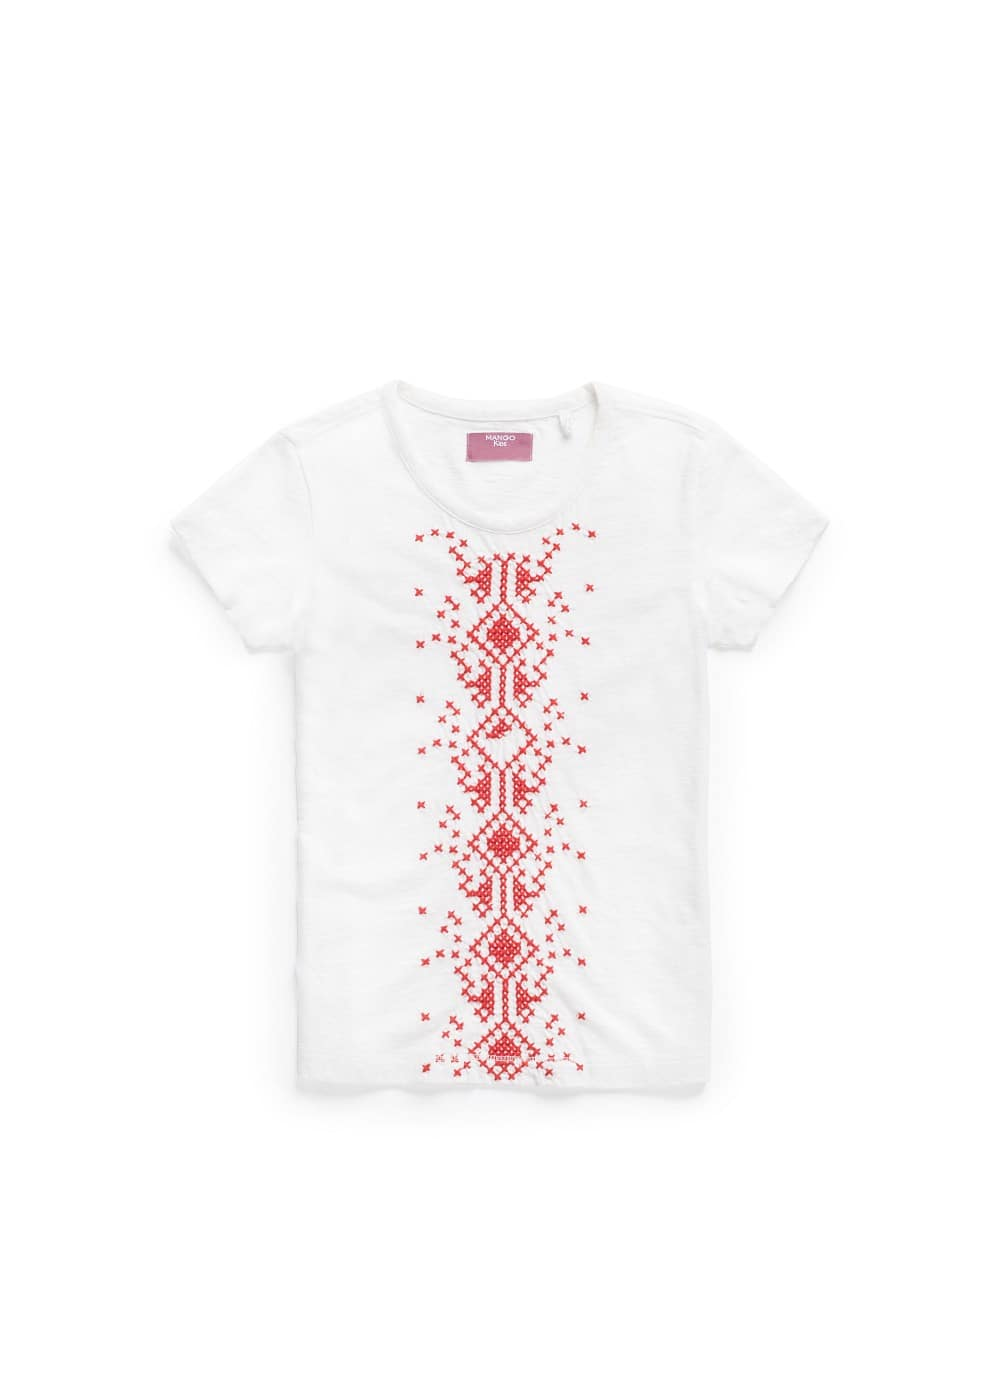 CROSS-STITCH EMBROIDERY T-SHIRT